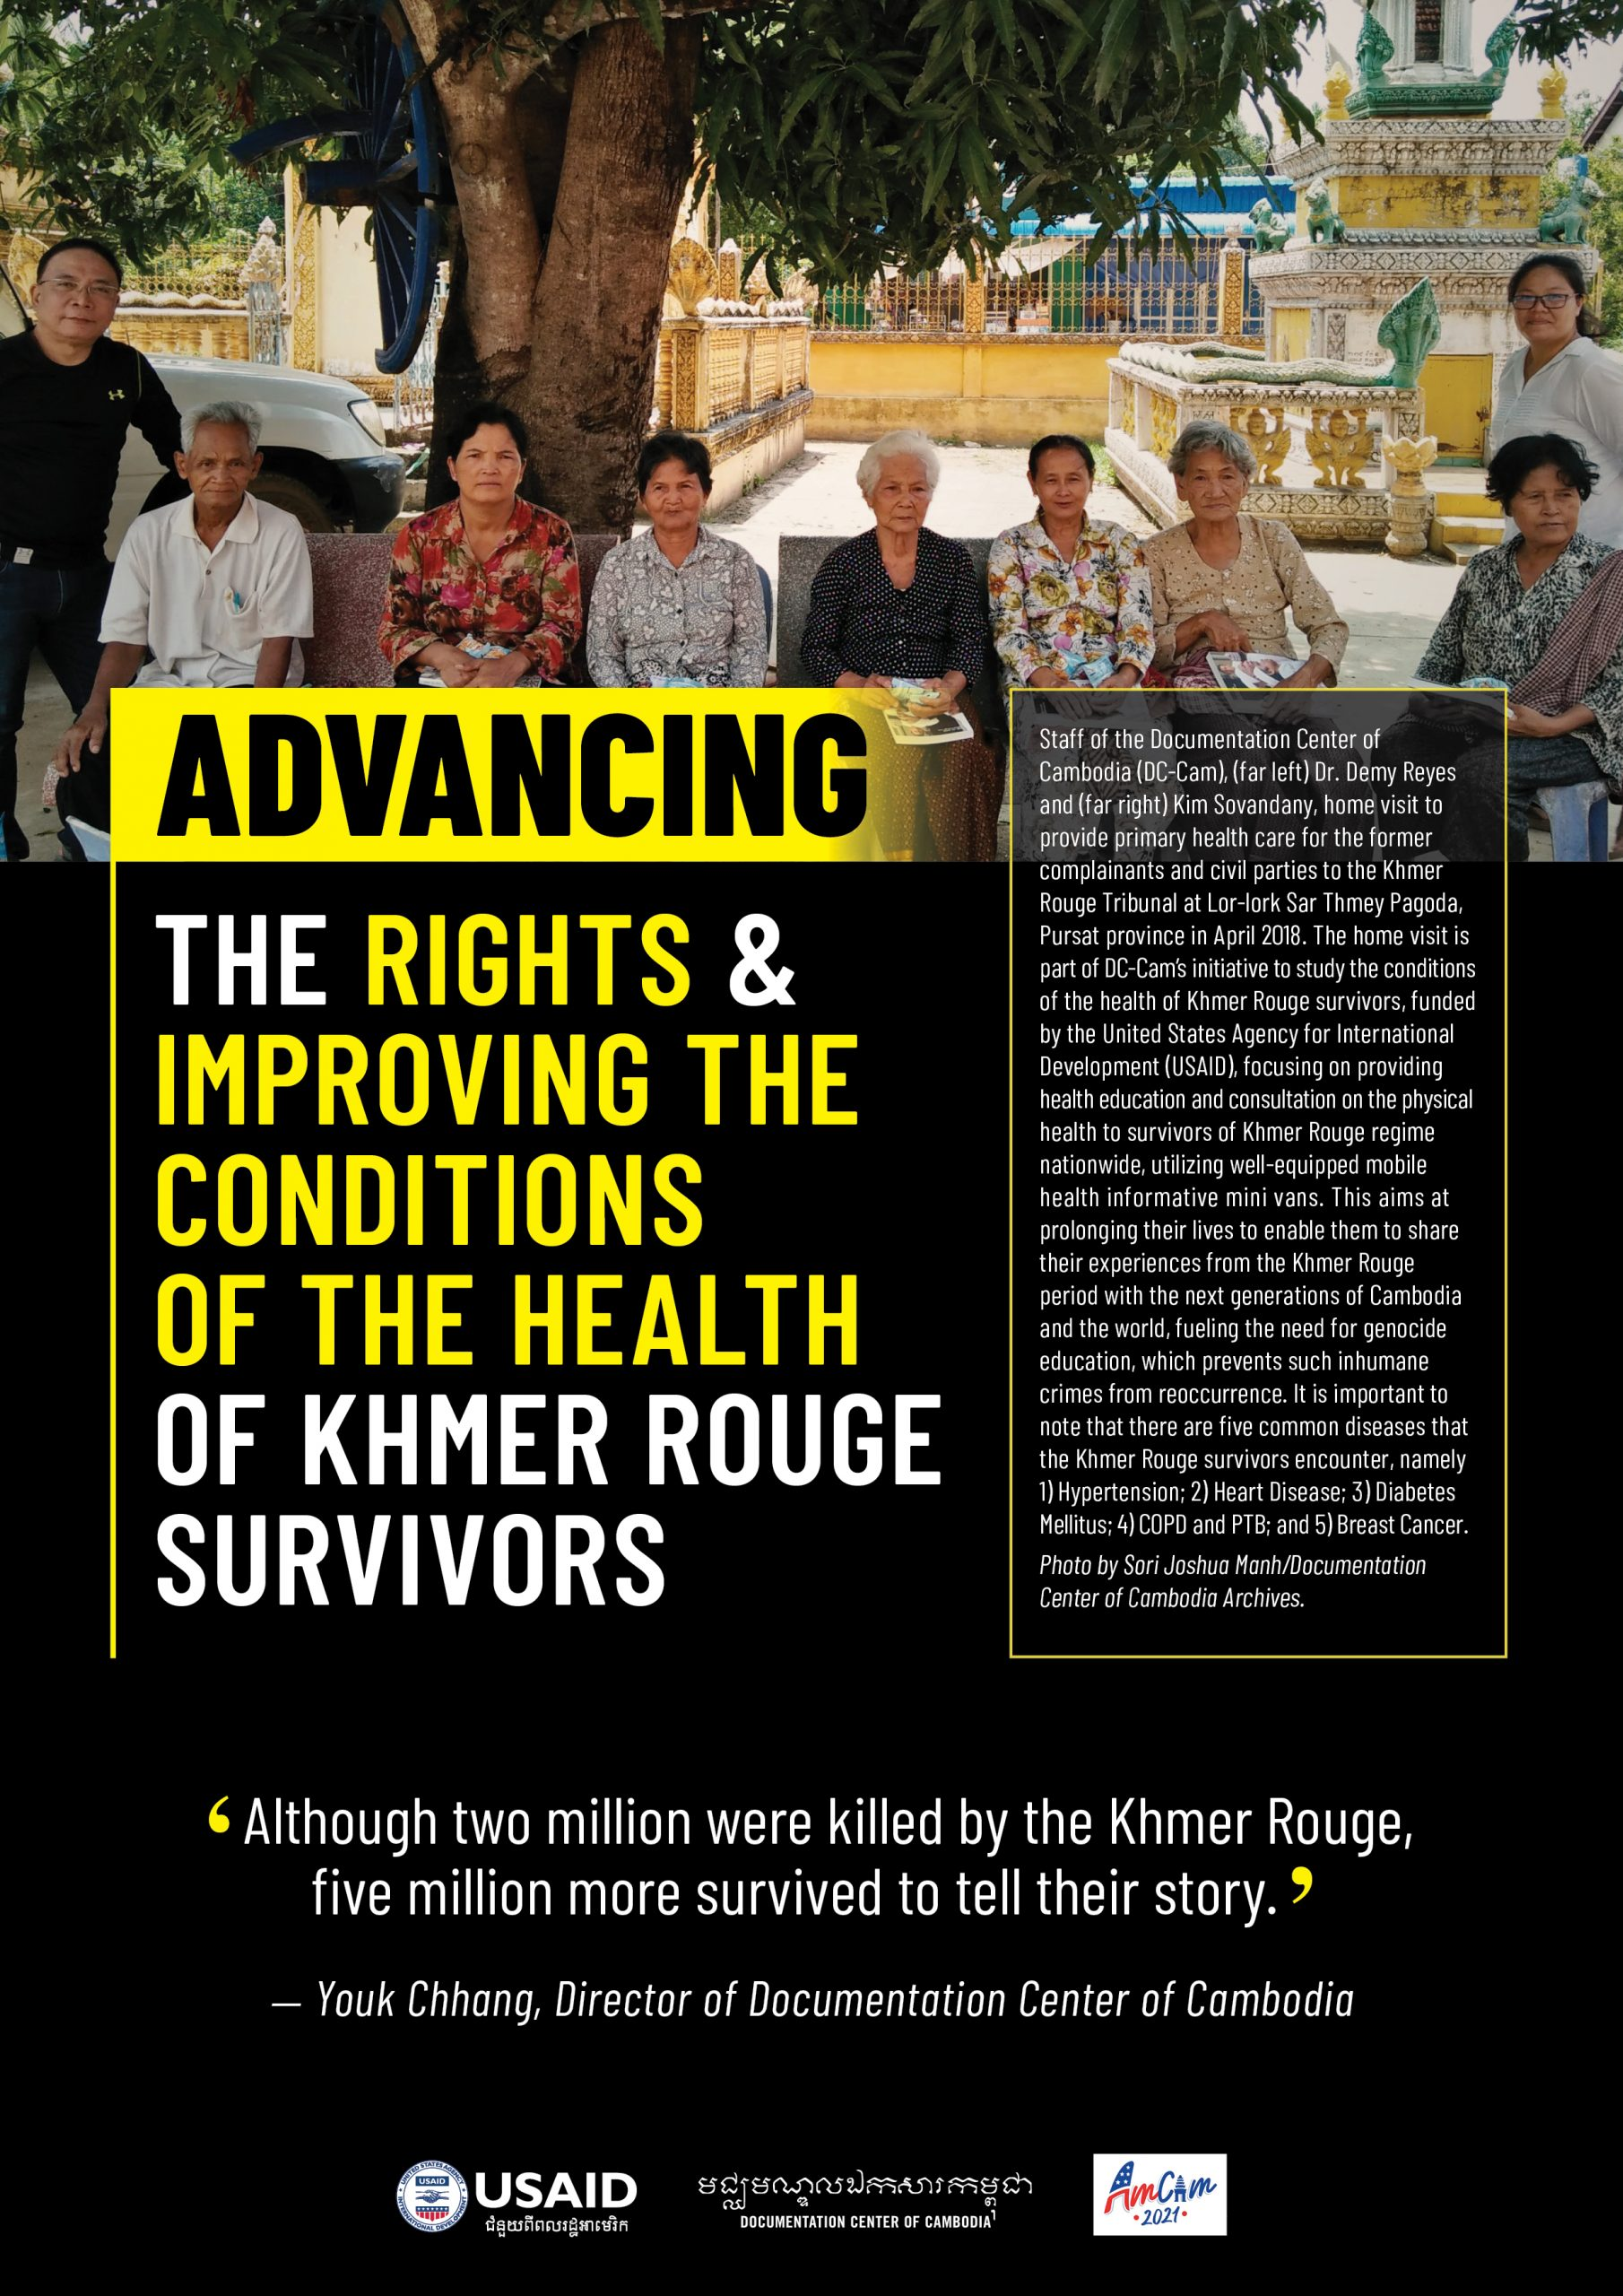 Advancing the Rights and Improving the Conditions of the Health of Khmer Rouge Survivors